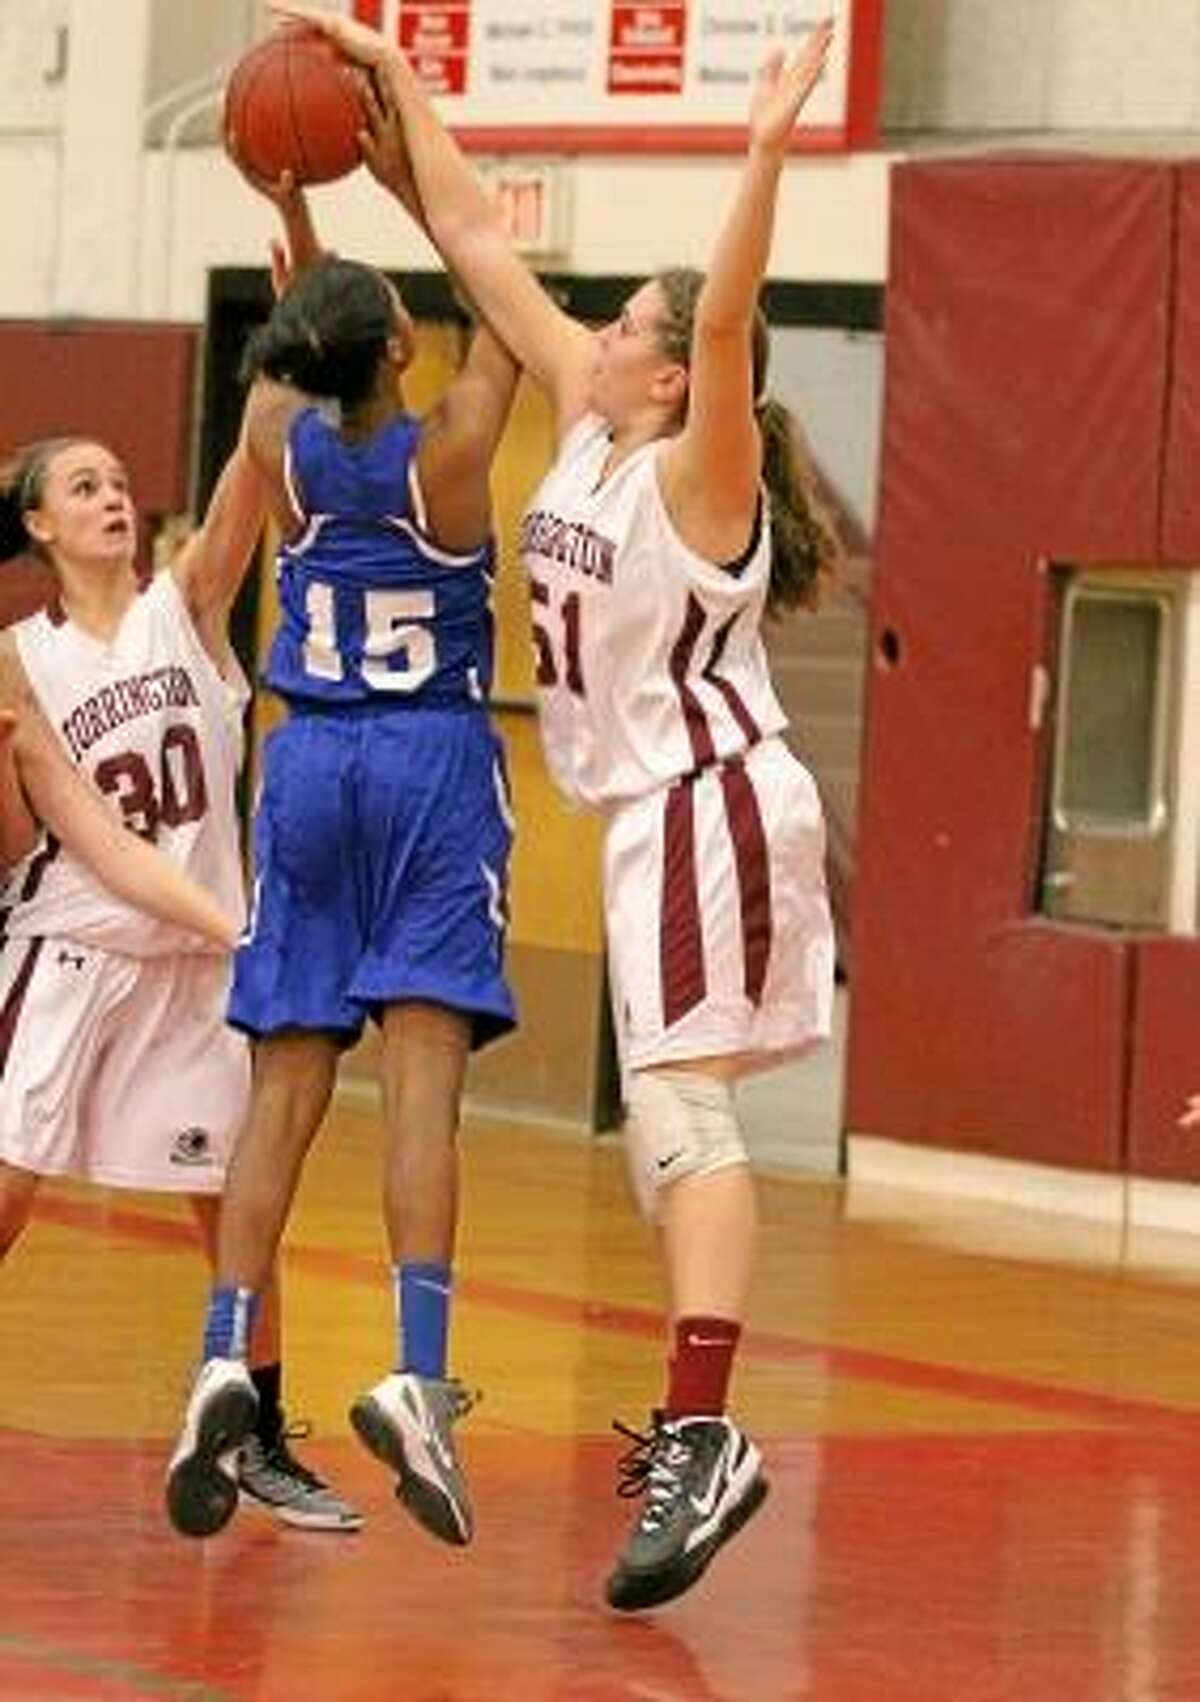 Megan Calabrese (#51) defends as a Crosby player goes up for a shot as teammate Olivia Morrison (#30) looks on